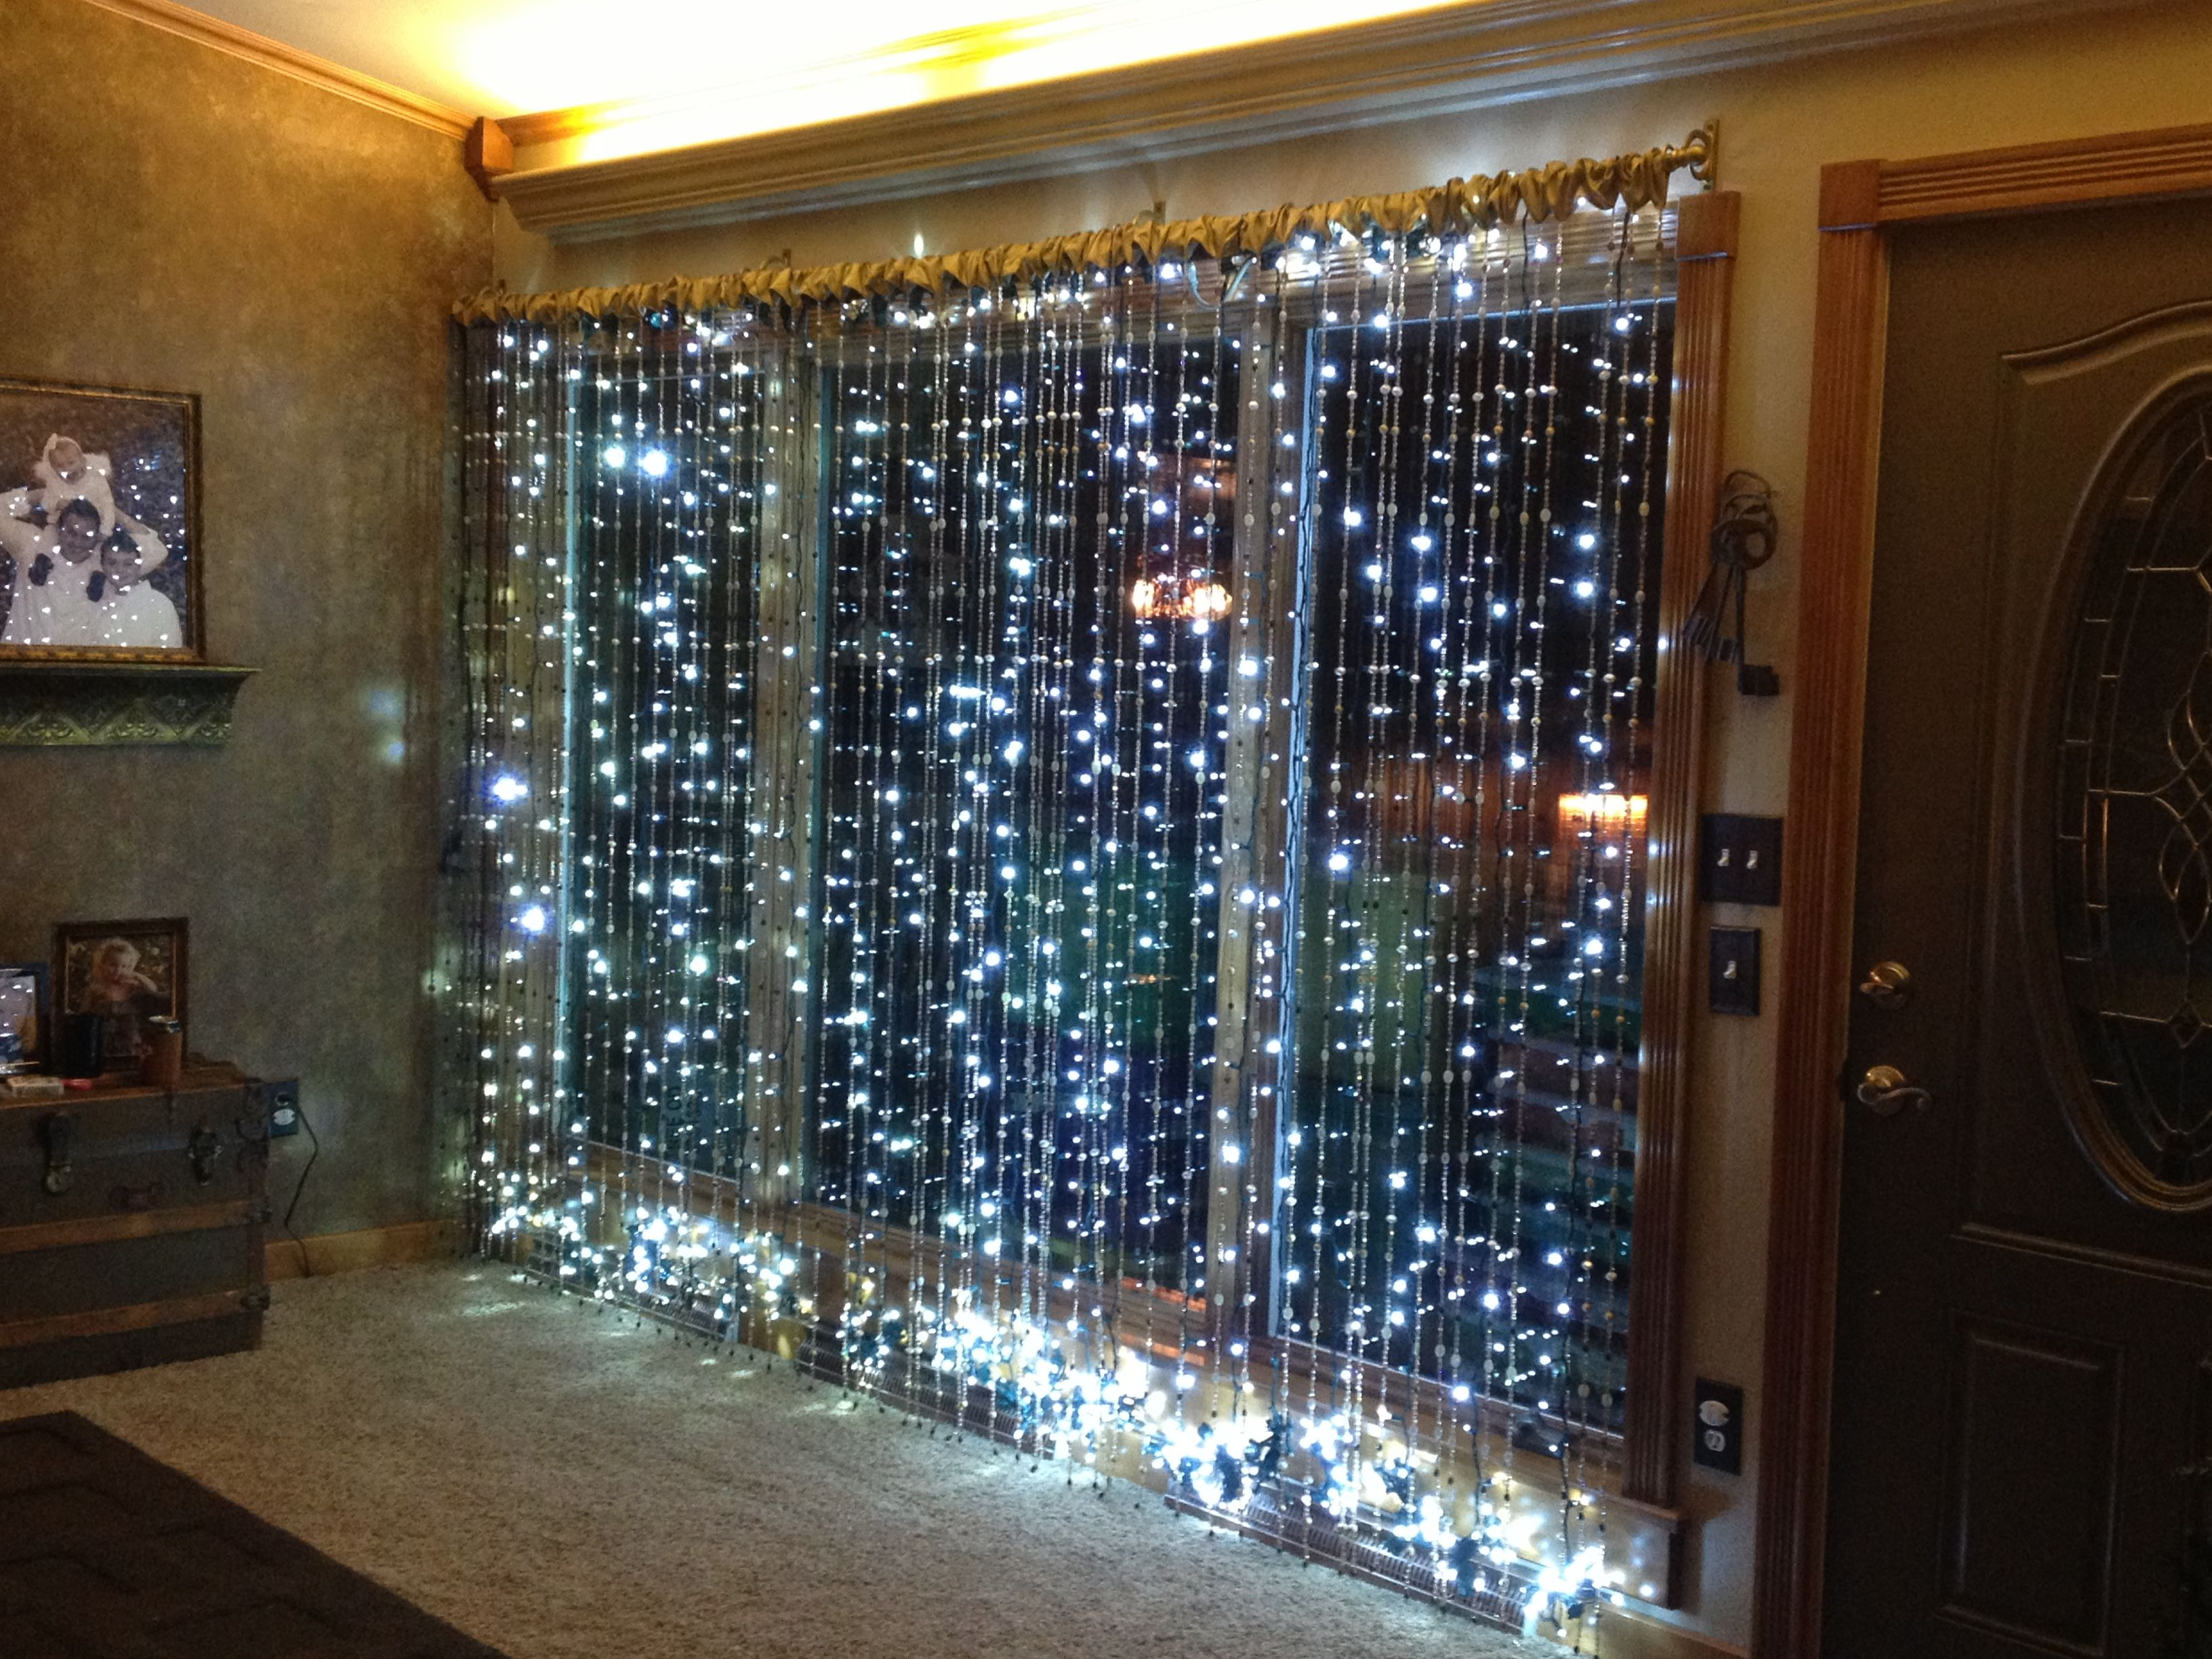 Lighted Christmas Window Using Electrical Bars And Led Lights Christmas Window Christmas Window Decorations Christmas Deco